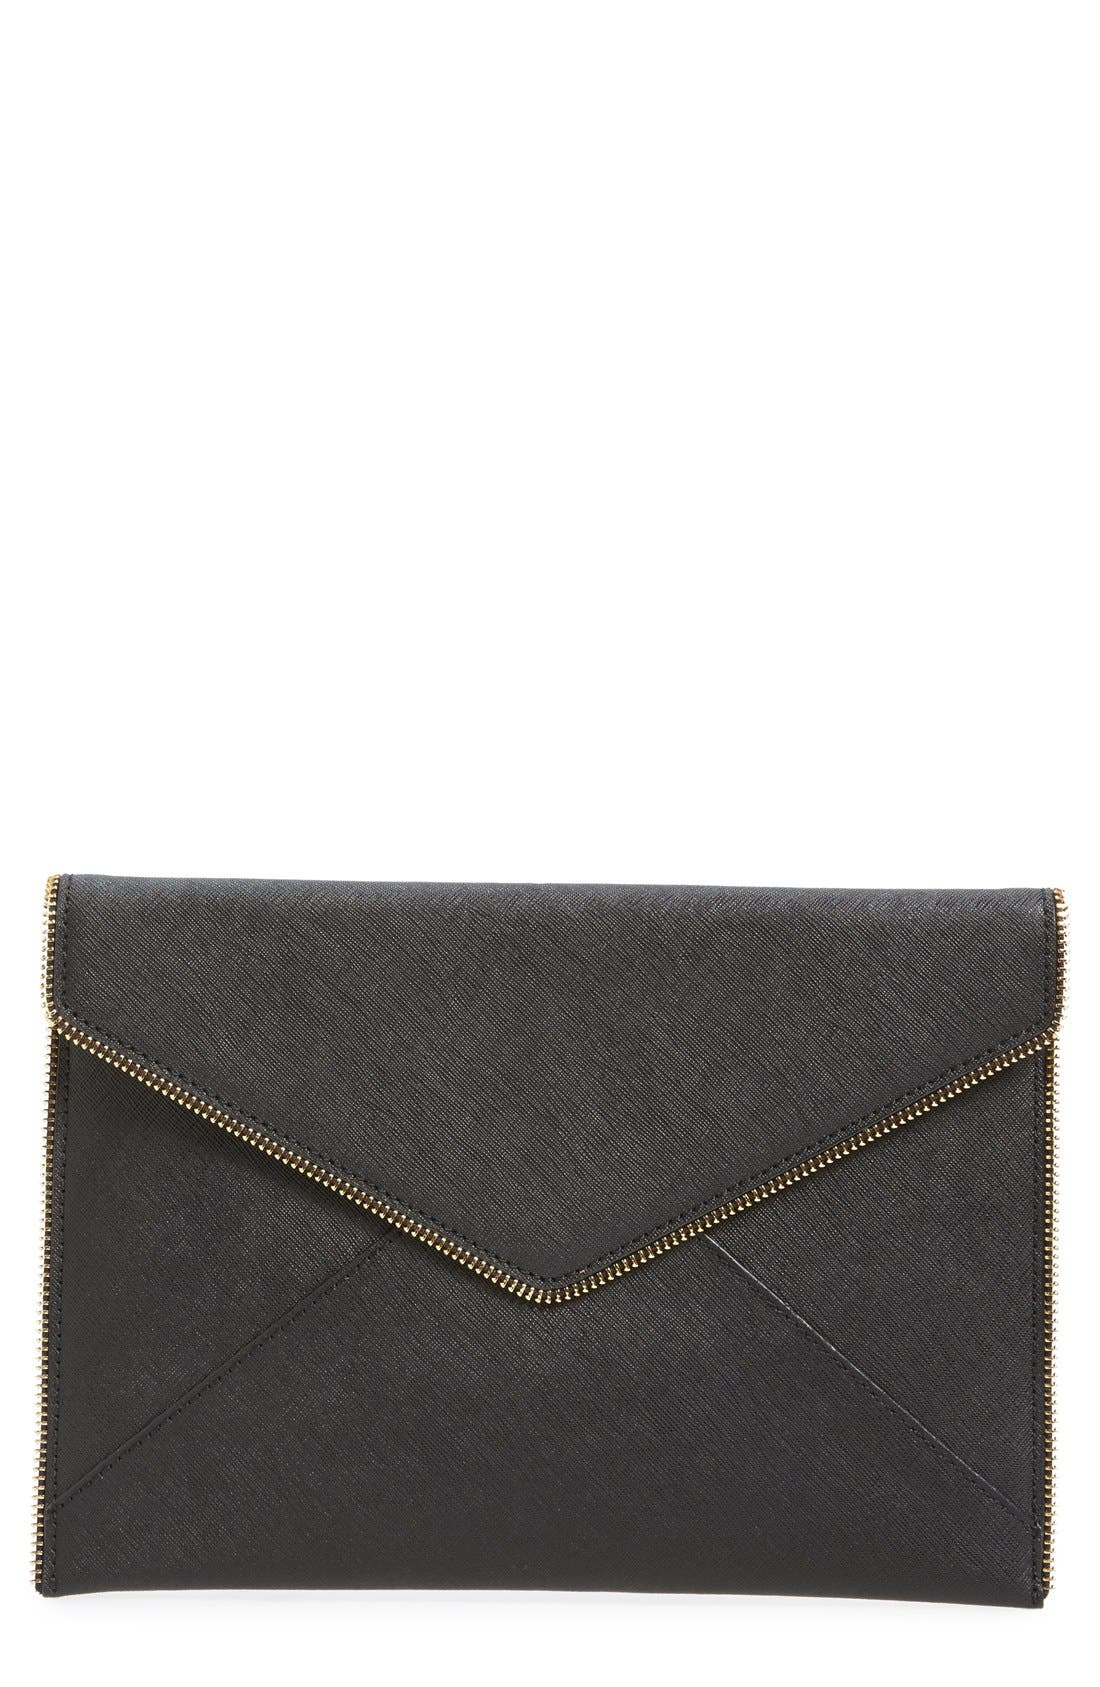 Leo Saffiano Clutch Bag, Black